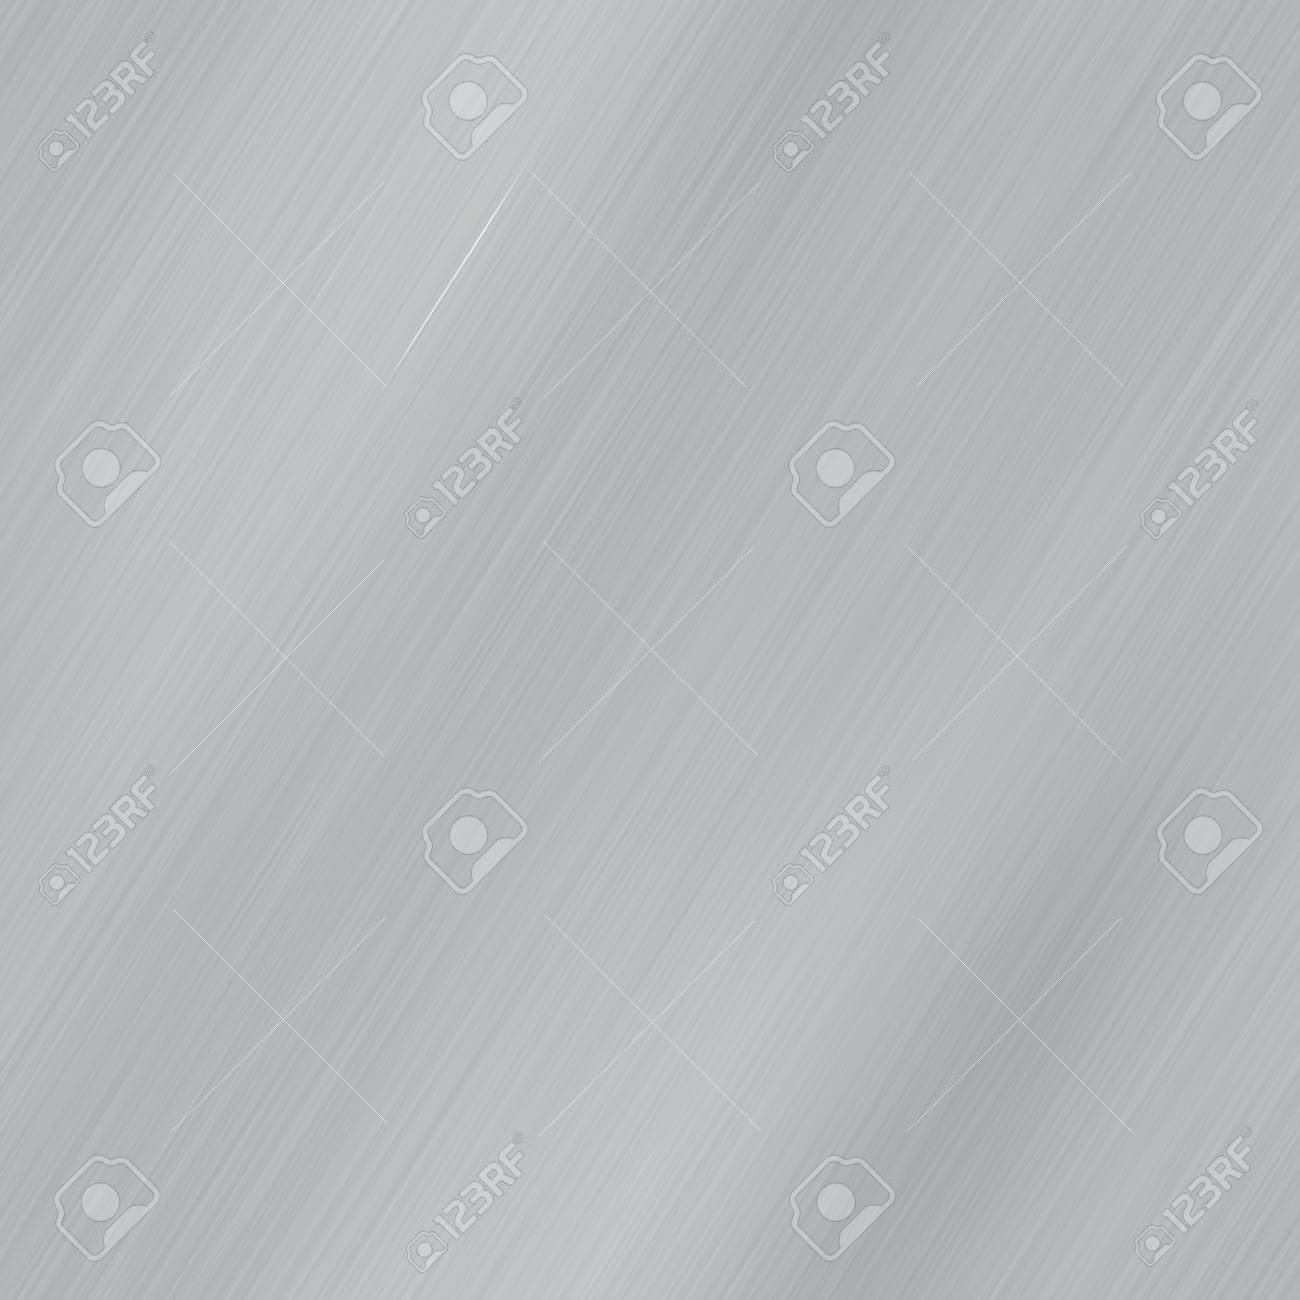 Brushed metal surface texture seamless background illustration Stock Photo - 3334798